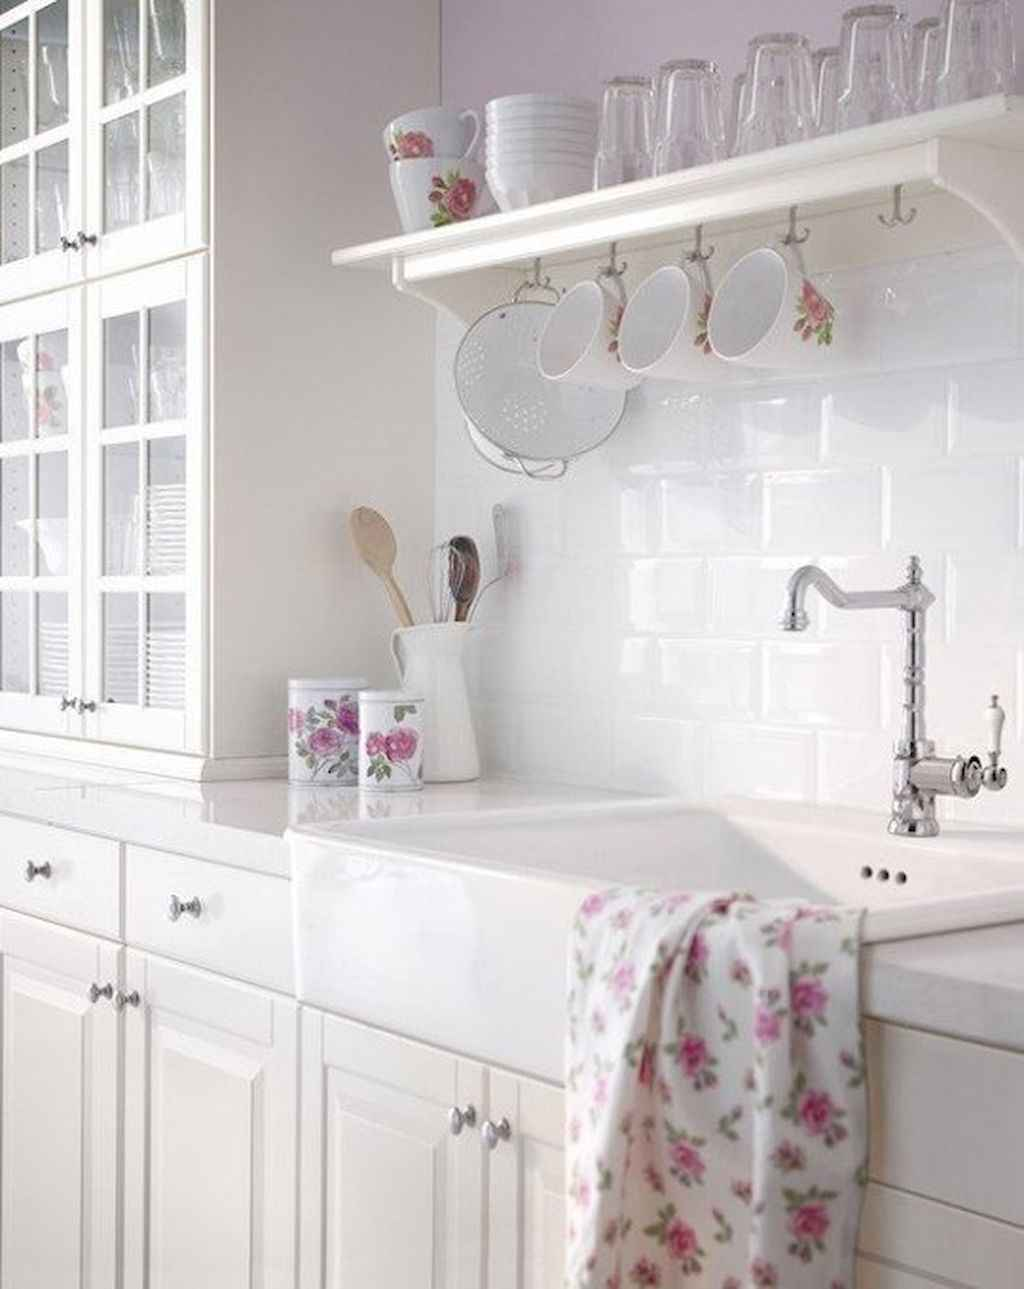 Incredible french country kitchen design ideas (5)